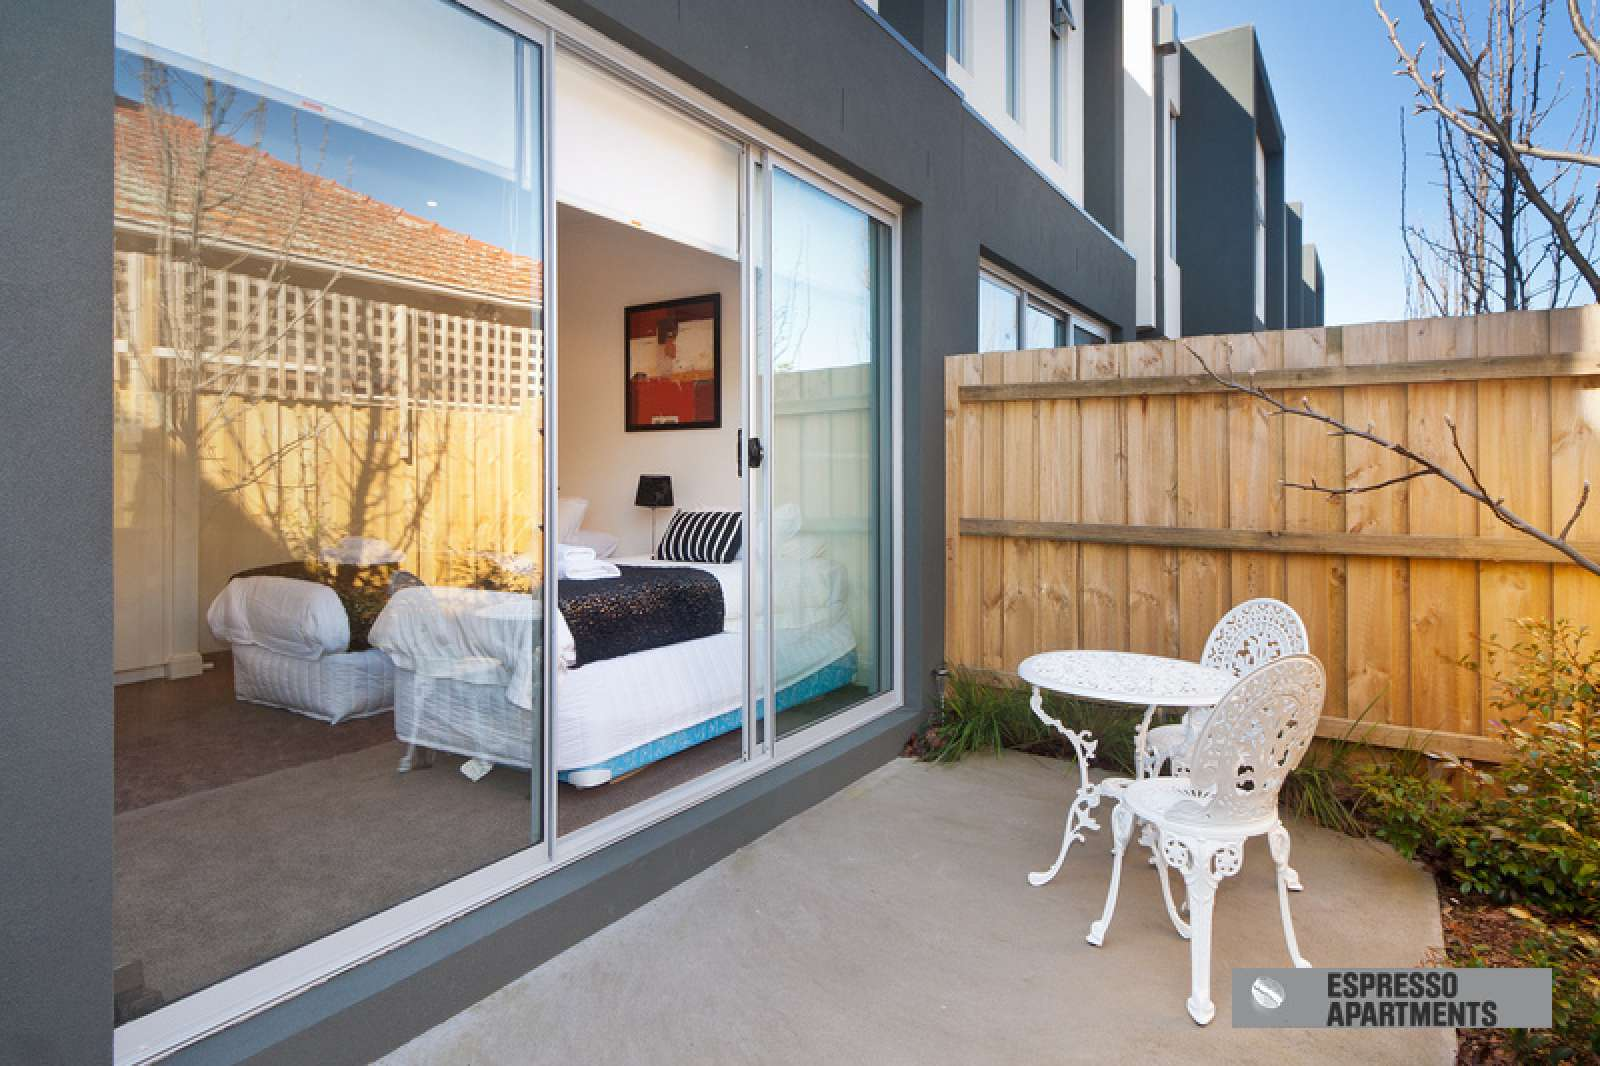 image for 18/293-295 Hawthorn Road, Caulfield, Melbourne